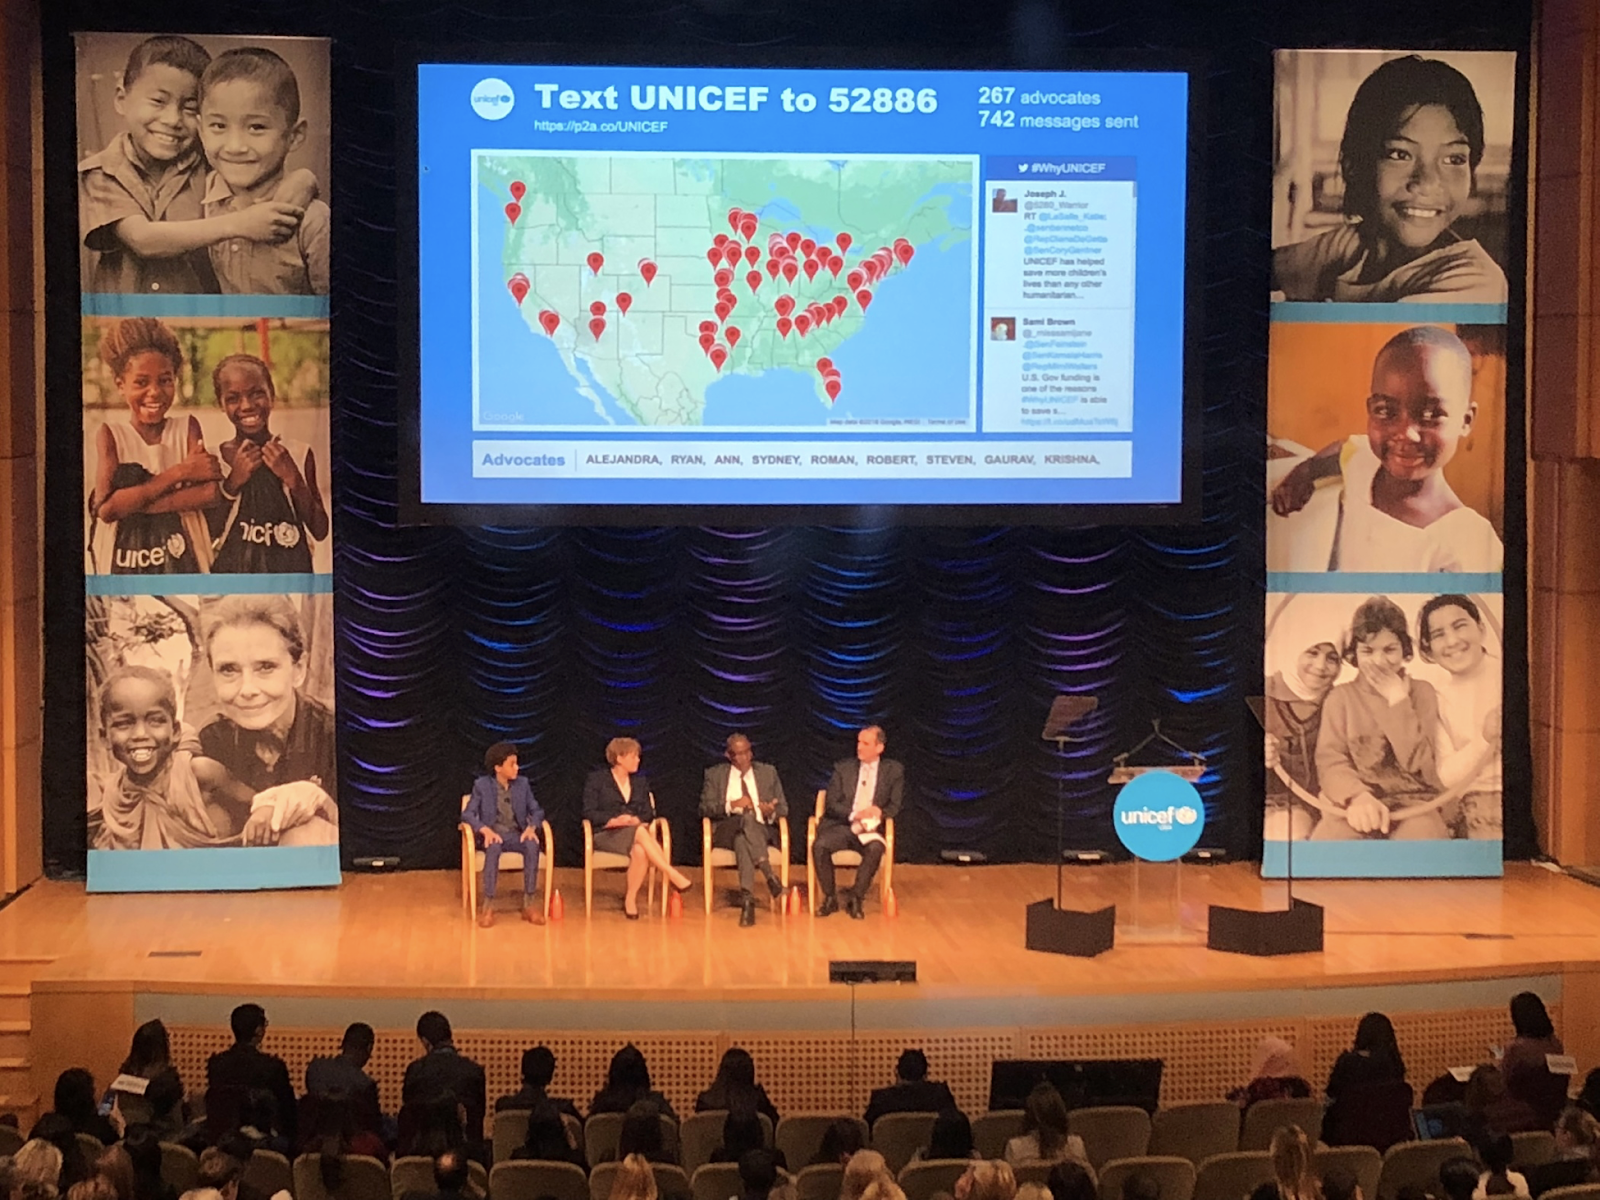 UNICEF map and conference